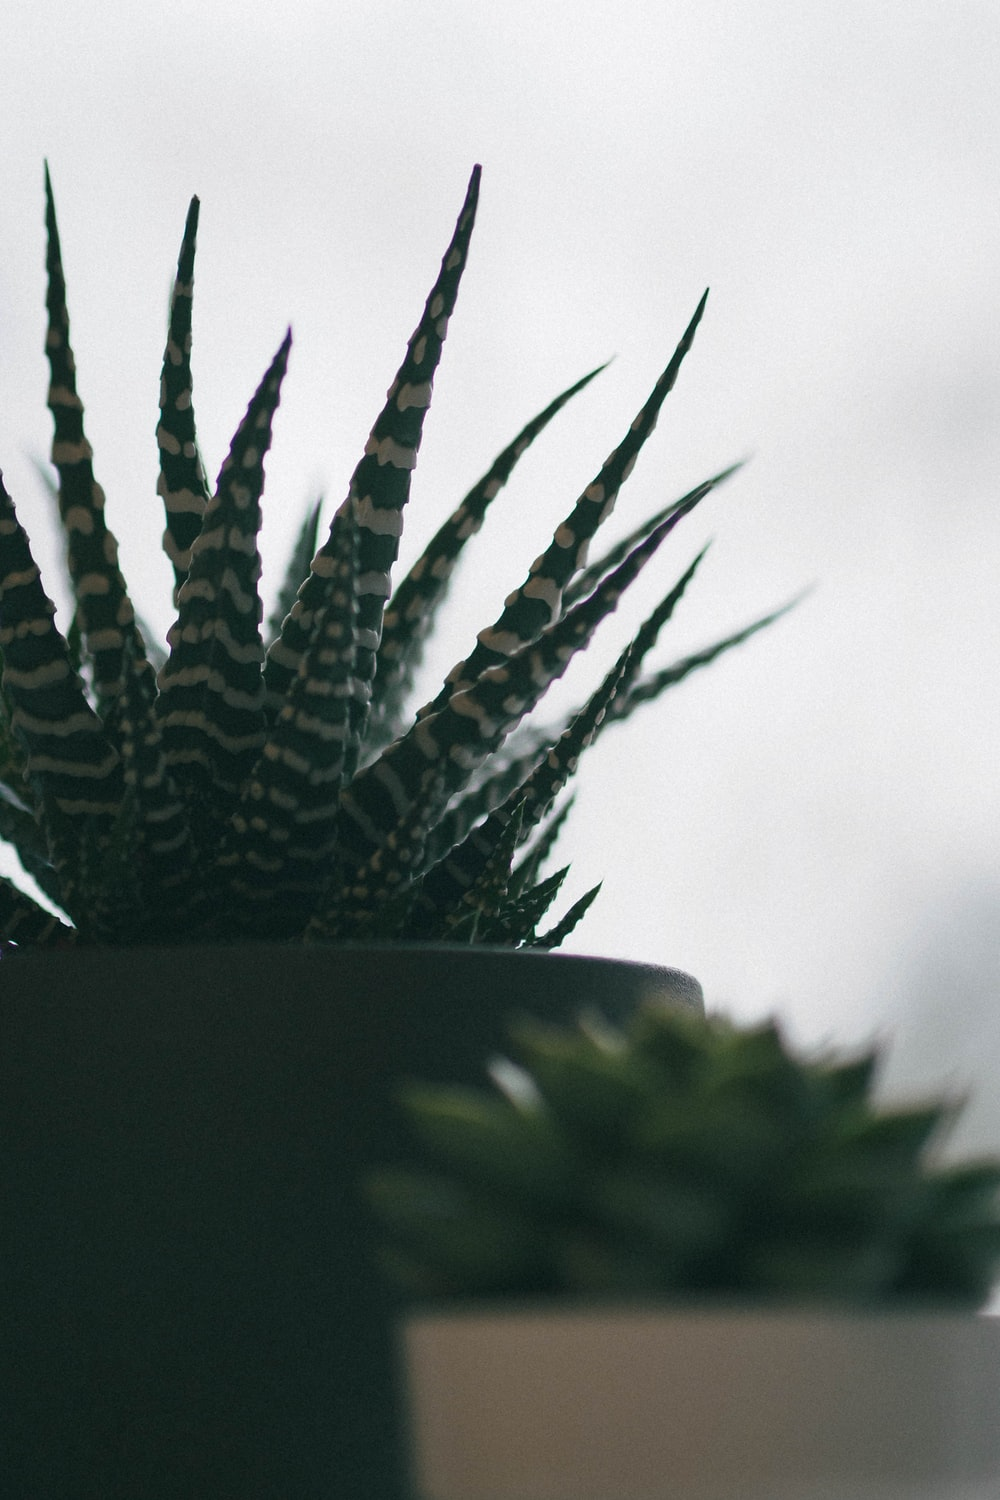 green and white plant in close up photography